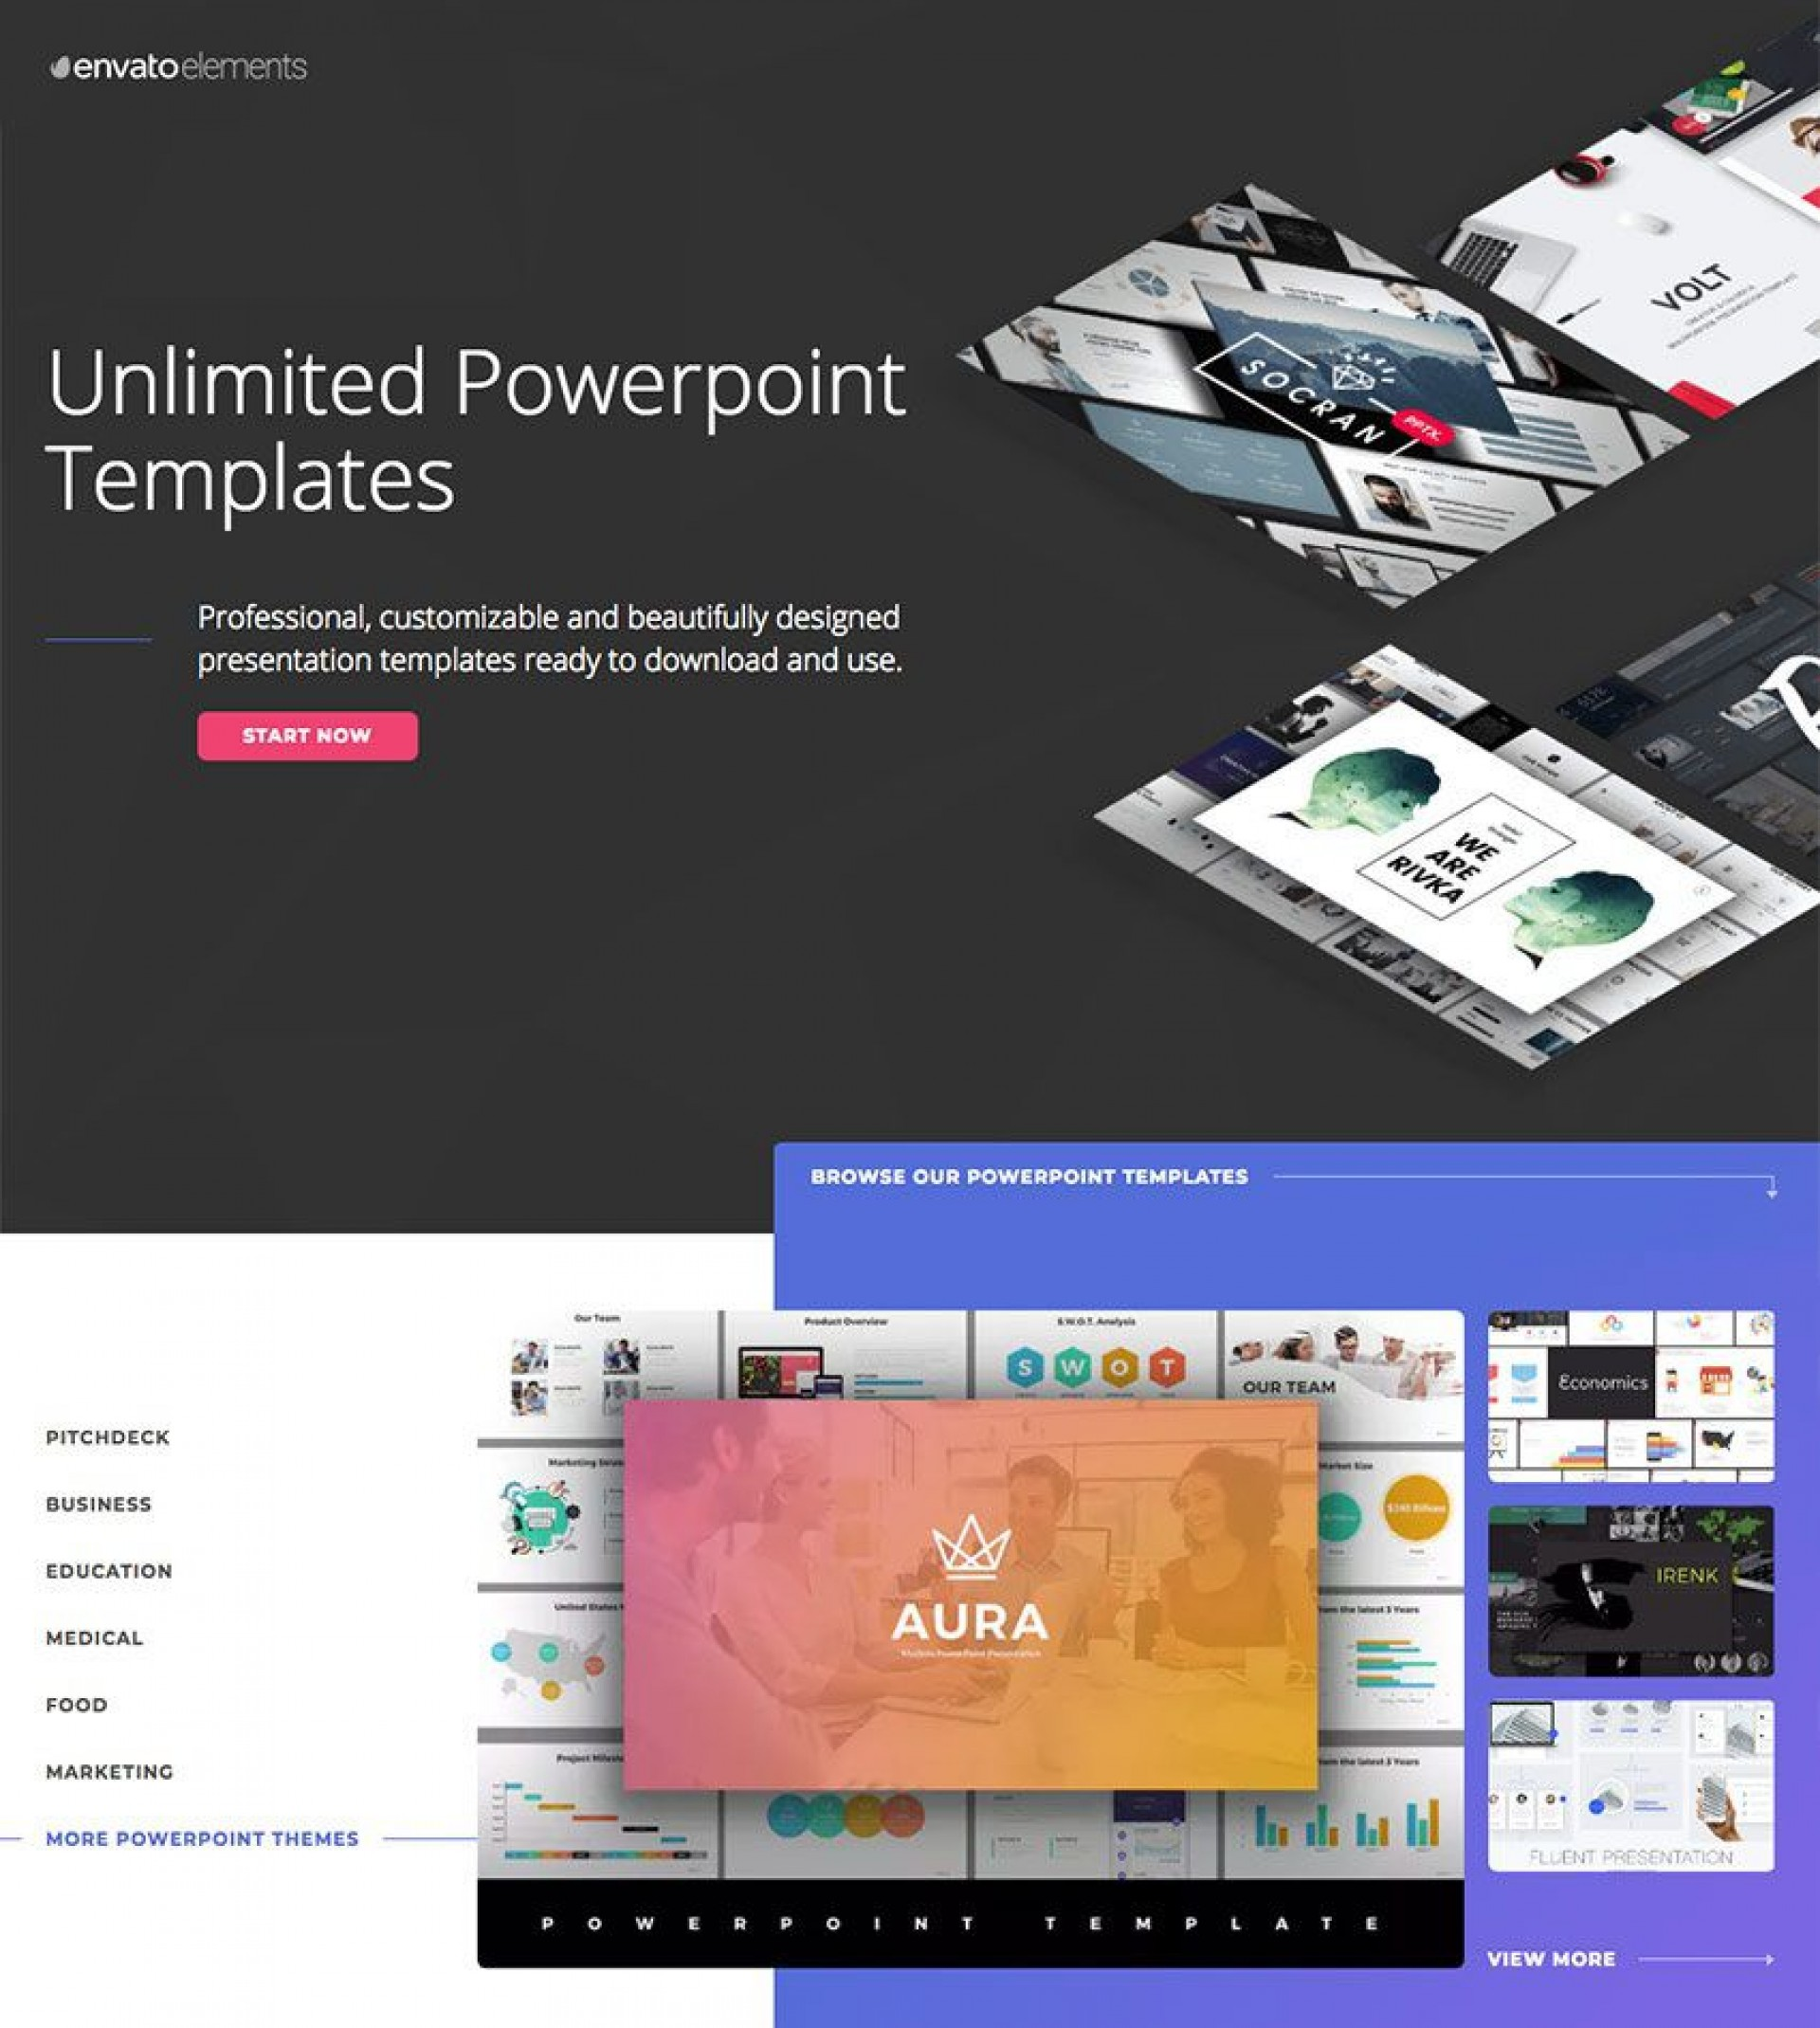 008 Singular Animated Powerpoint Template Free Download 2016 Highest Clarity  3d1920